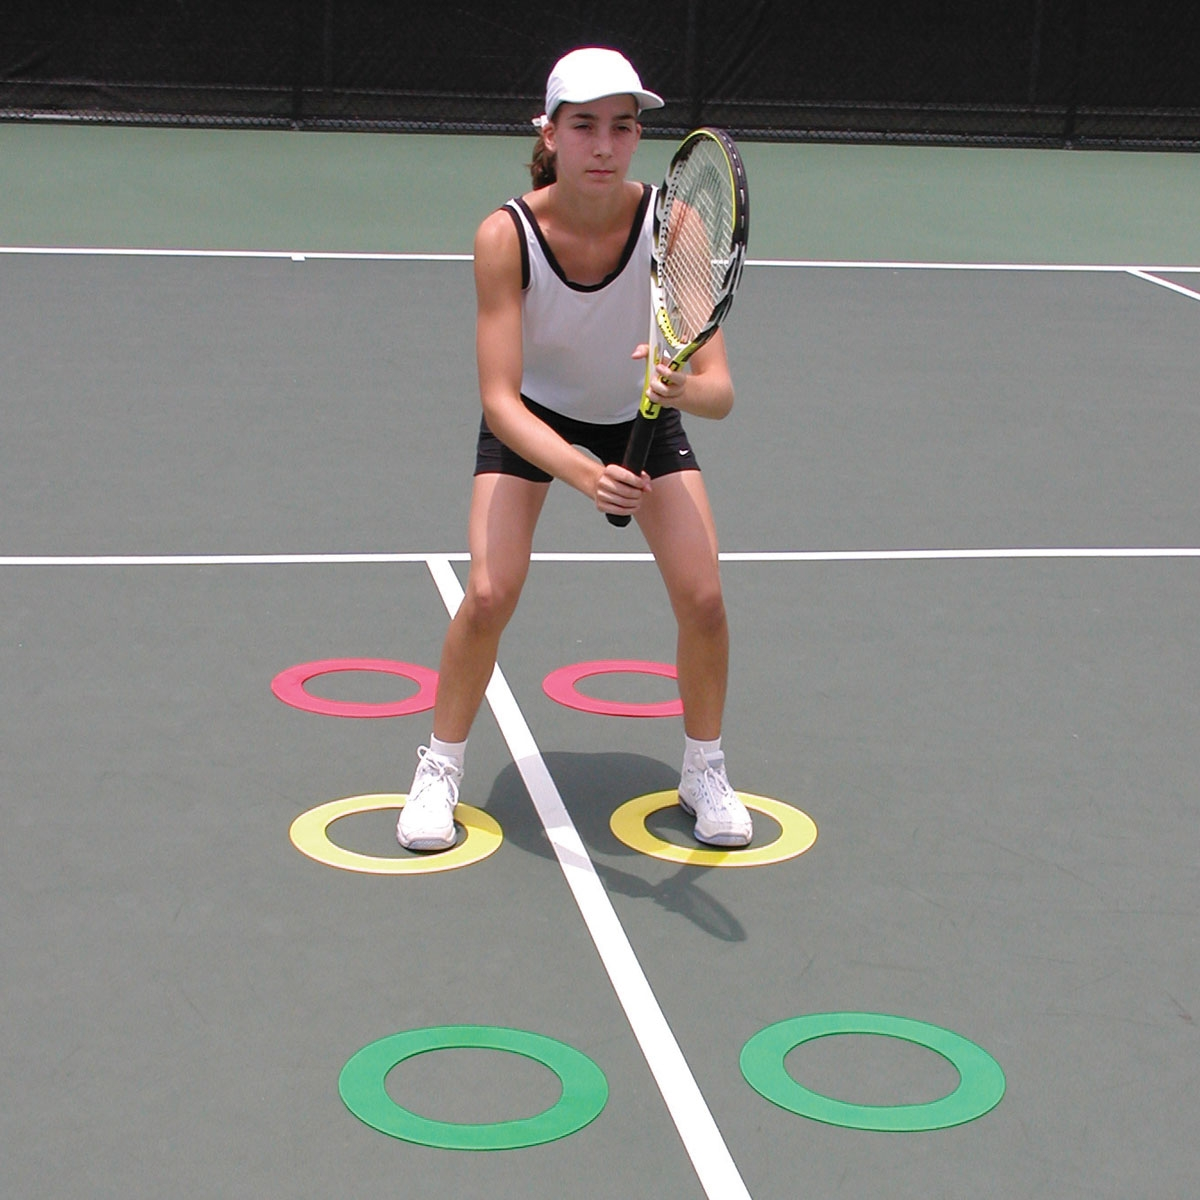 tennis play working on footing agility on tennis court with ring markers set